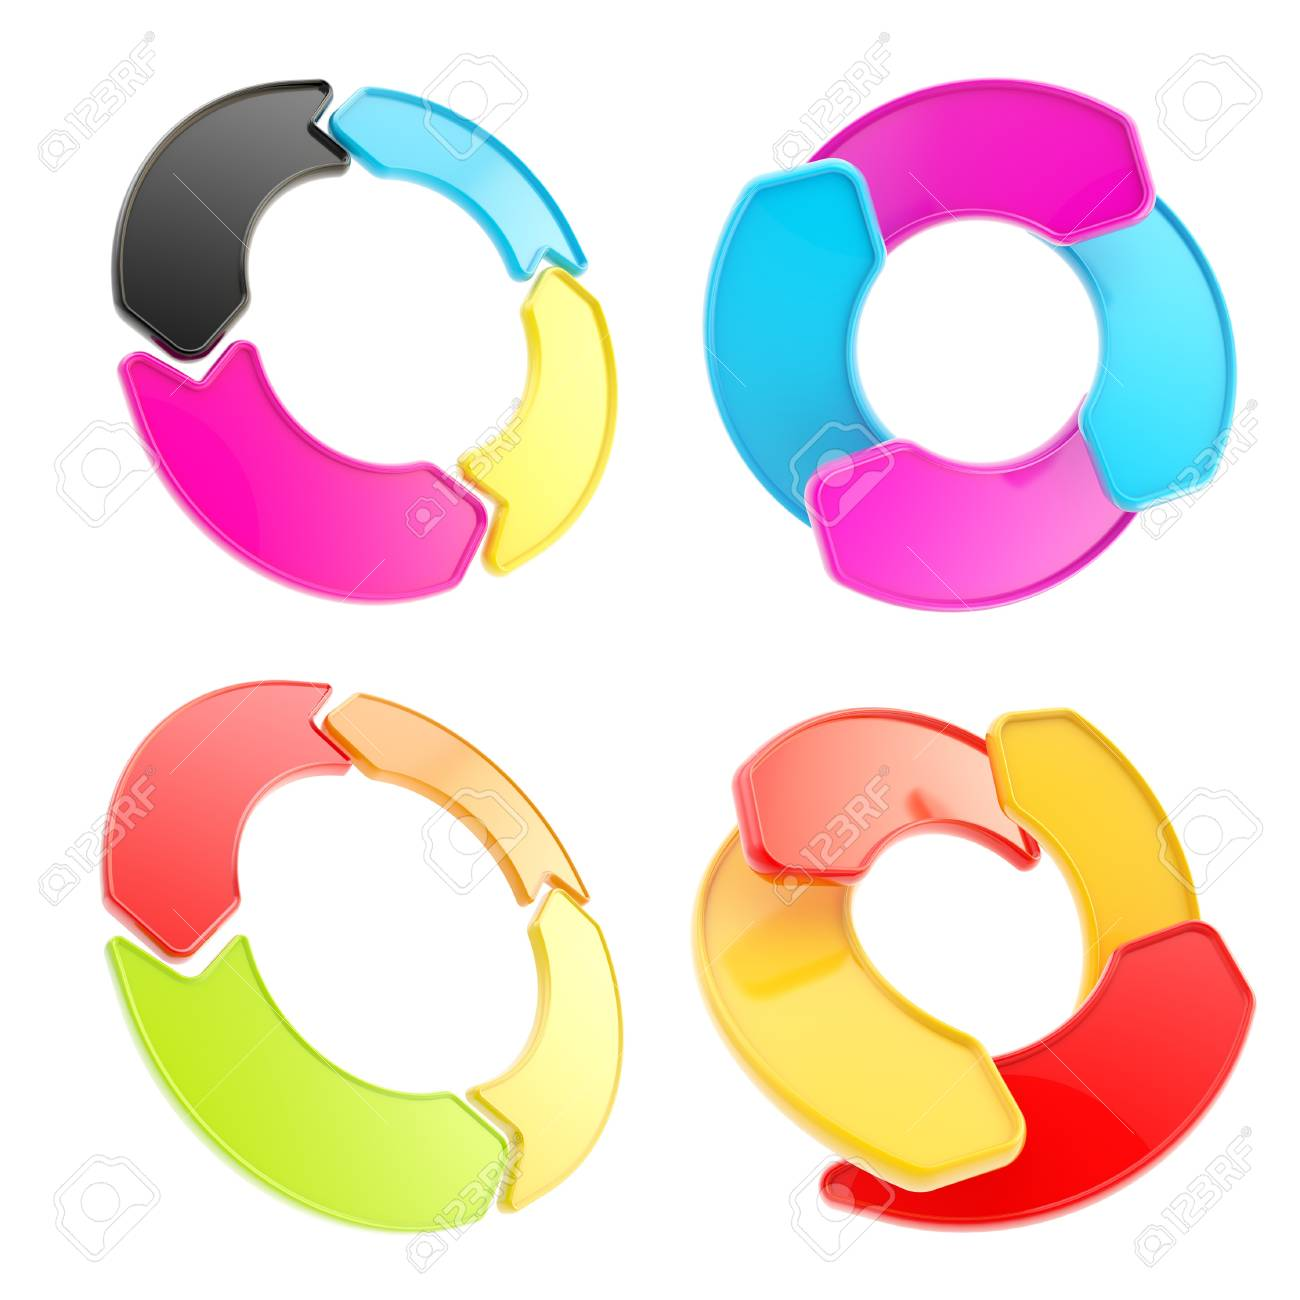 Four colorful glossy arrow copyspace emblem circular round tag isolated on white, set of four Stock Photo - 15090690